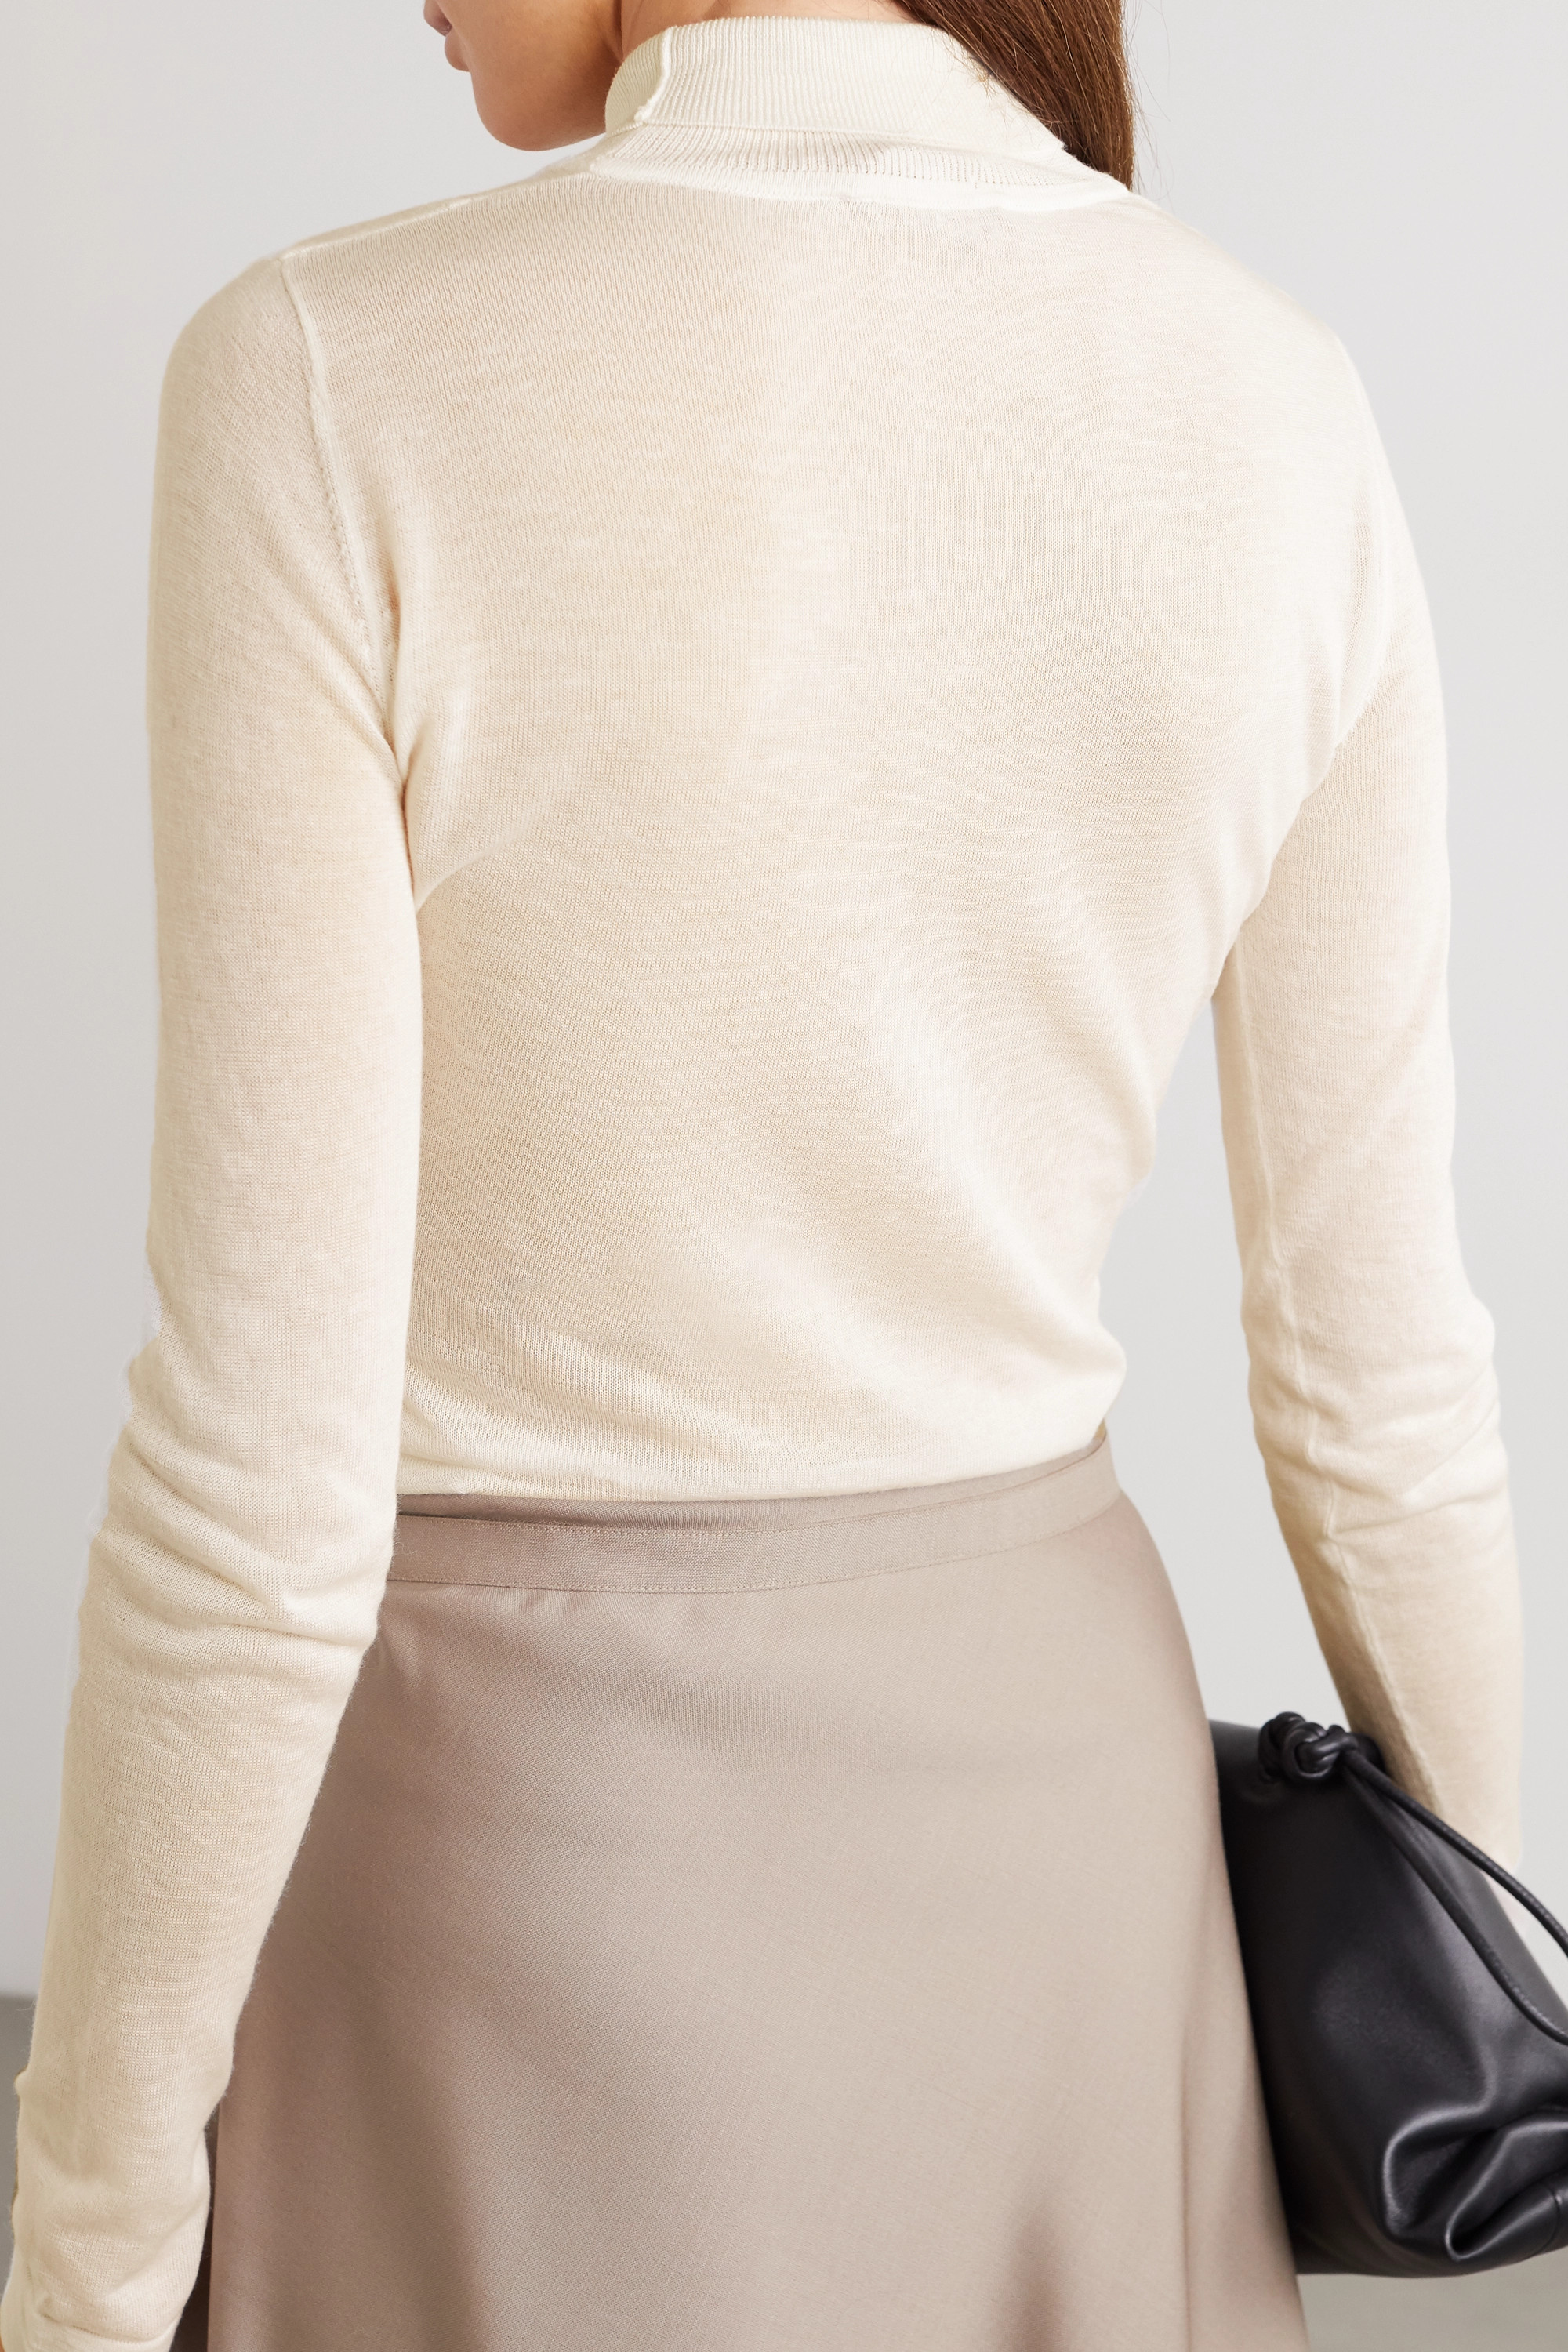 Altuzarra Reiko paneled knitted turtleneck sweater